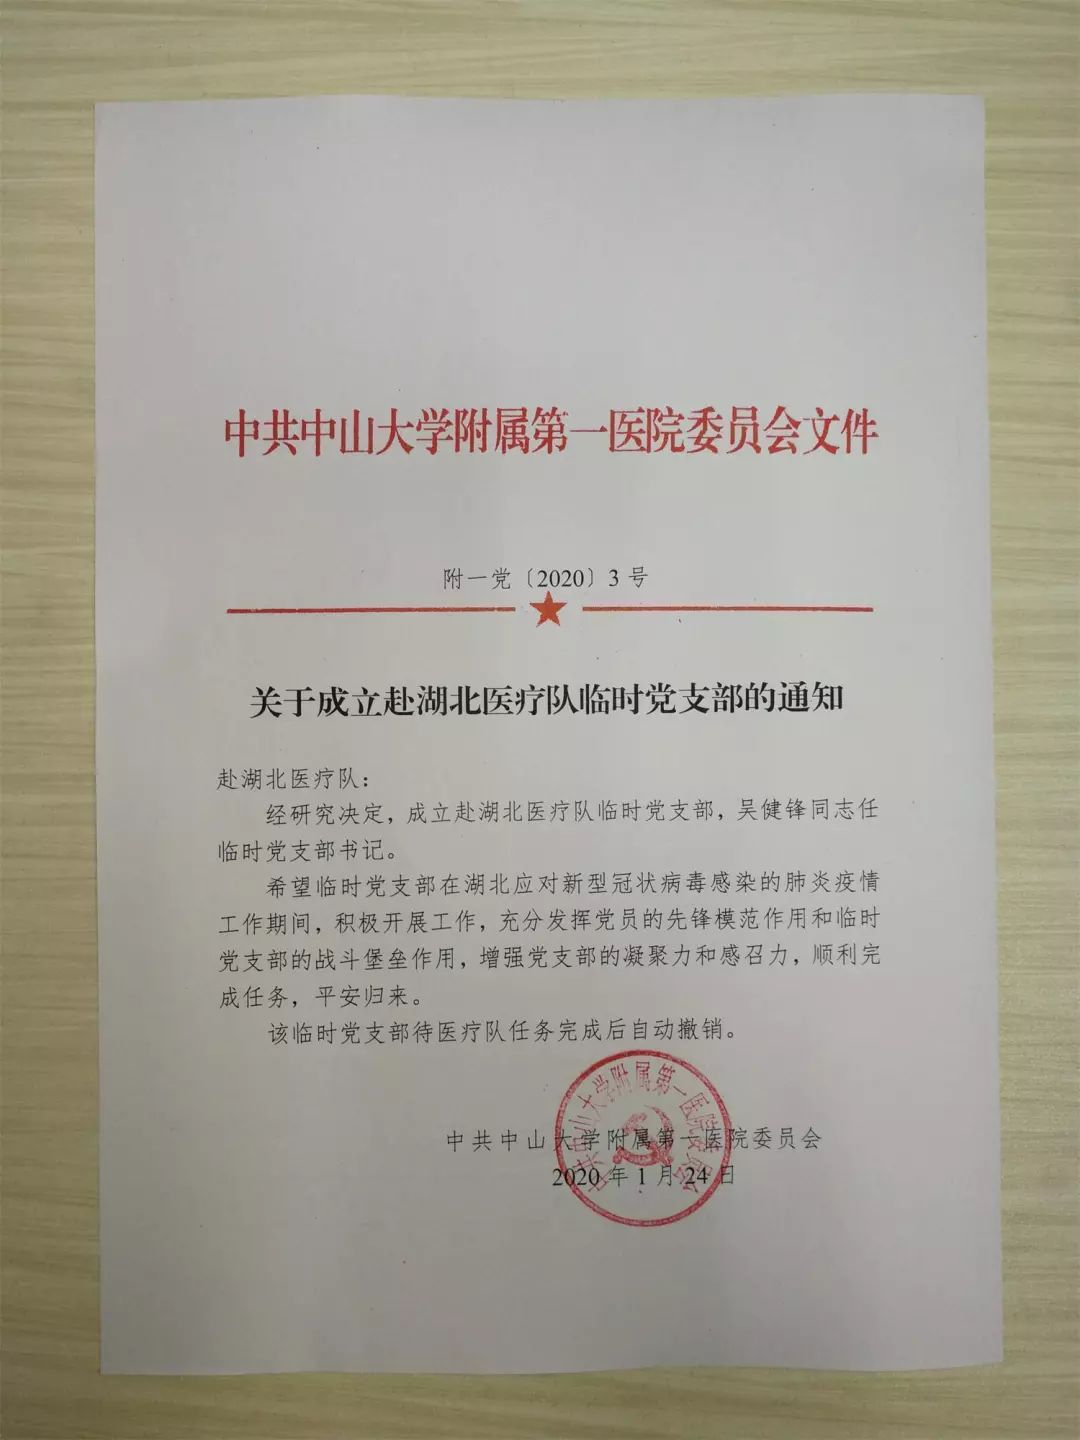 http://www.21gdl.com/guangdonglvyou/204133.html